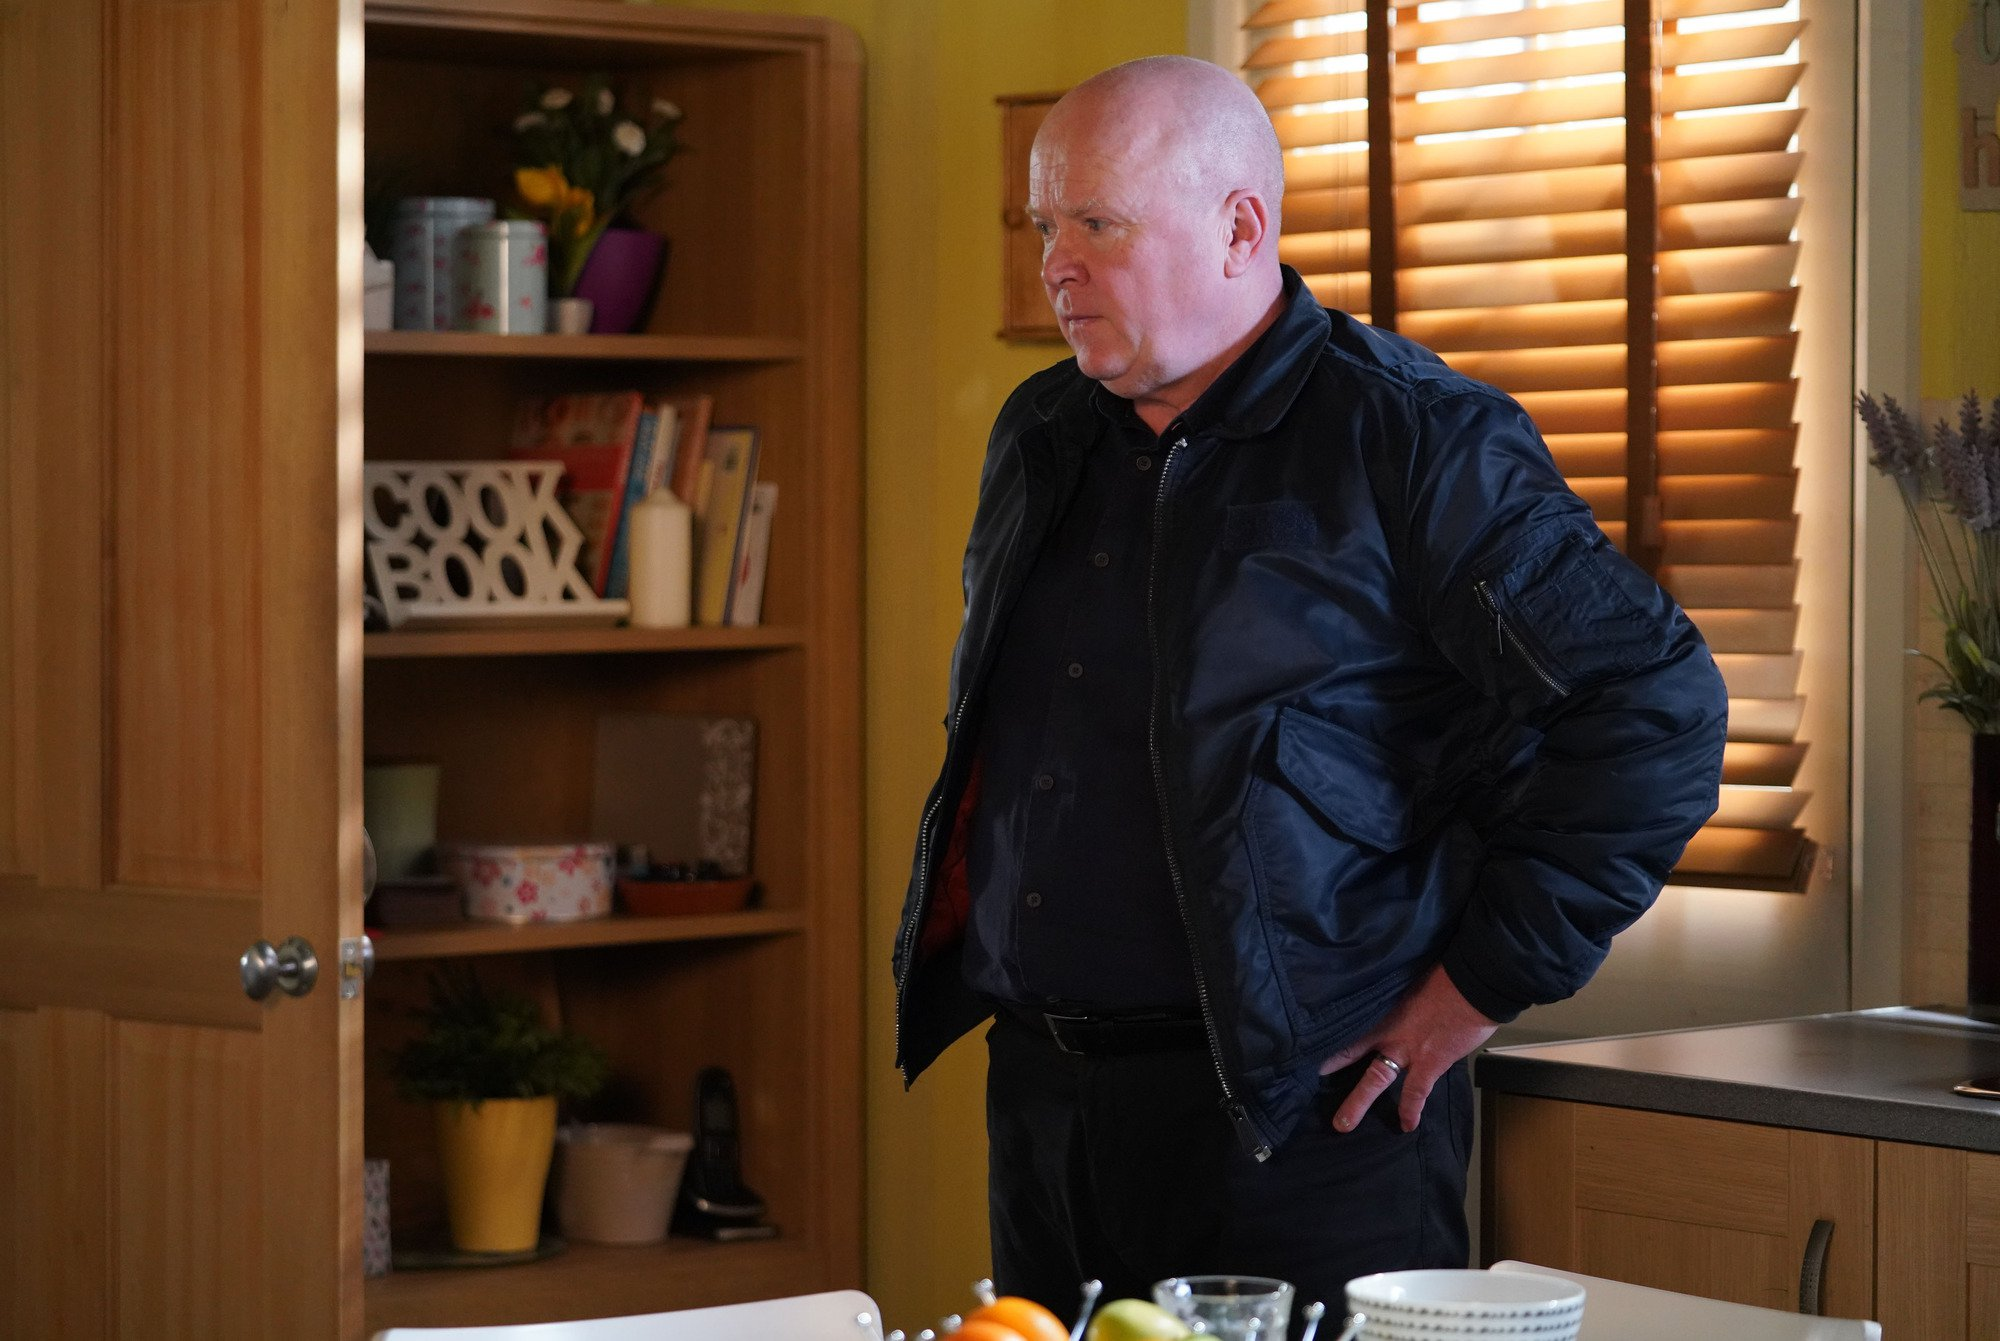 EastEnders spoilers: Phil Mitchell is back tonight with shocking news about Keanu Taylor